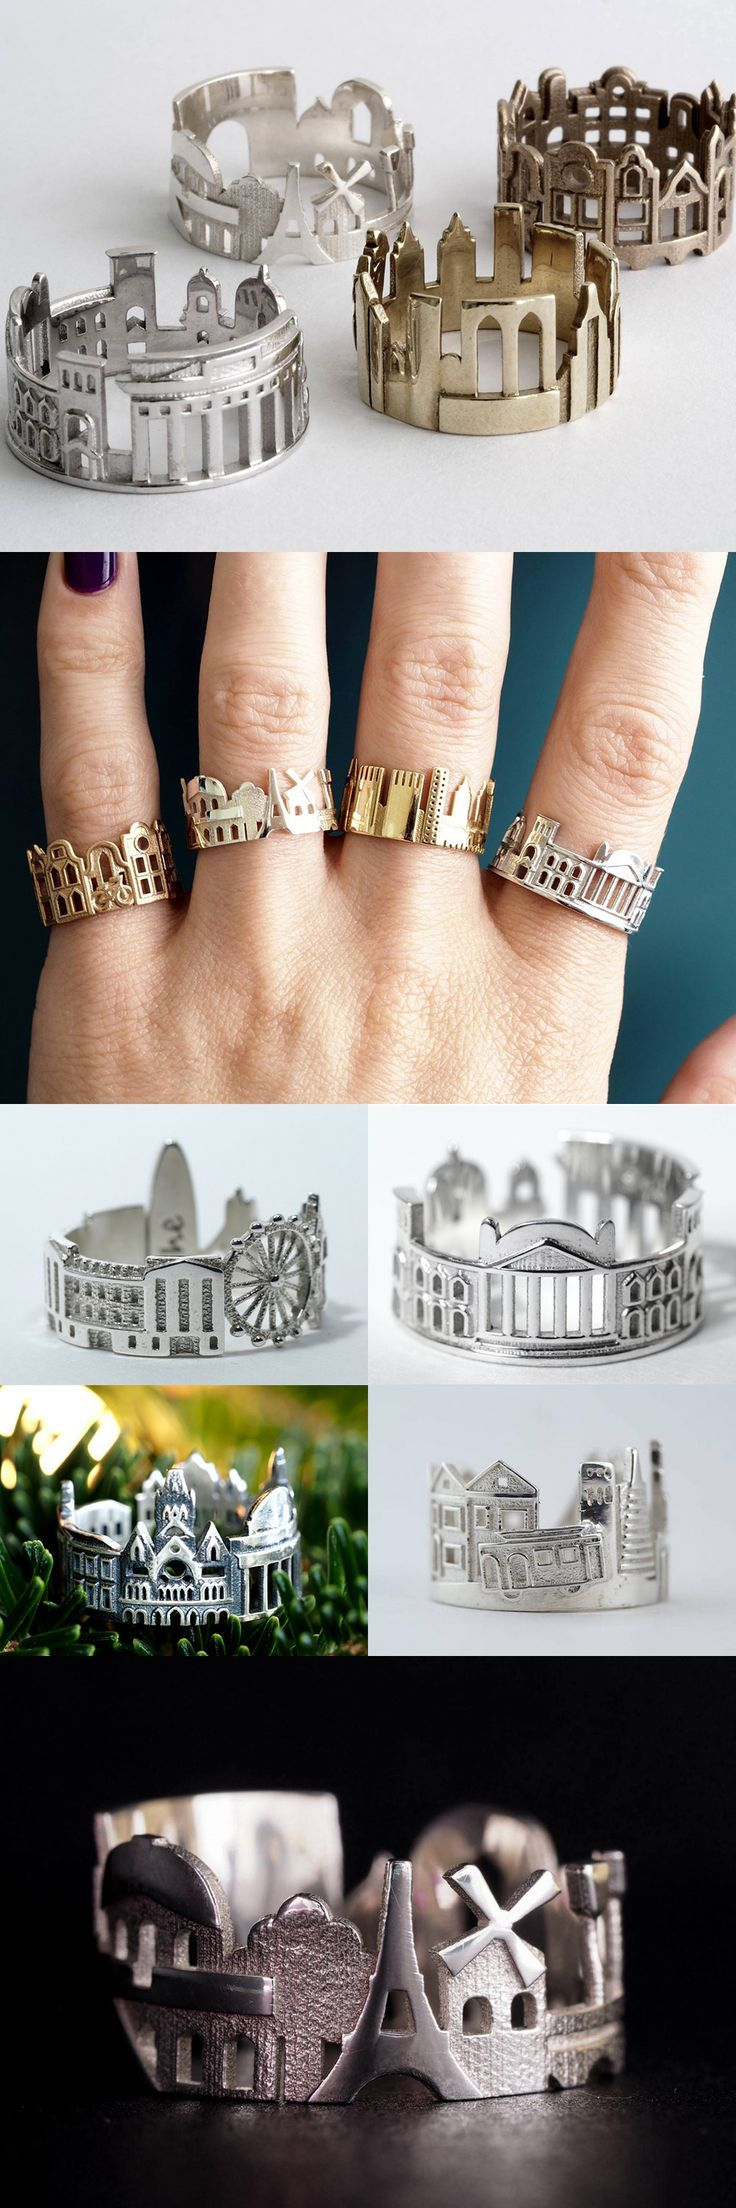 Cityscape Rings Feature Architectural Highlights of Iconic Cities ,  Weby